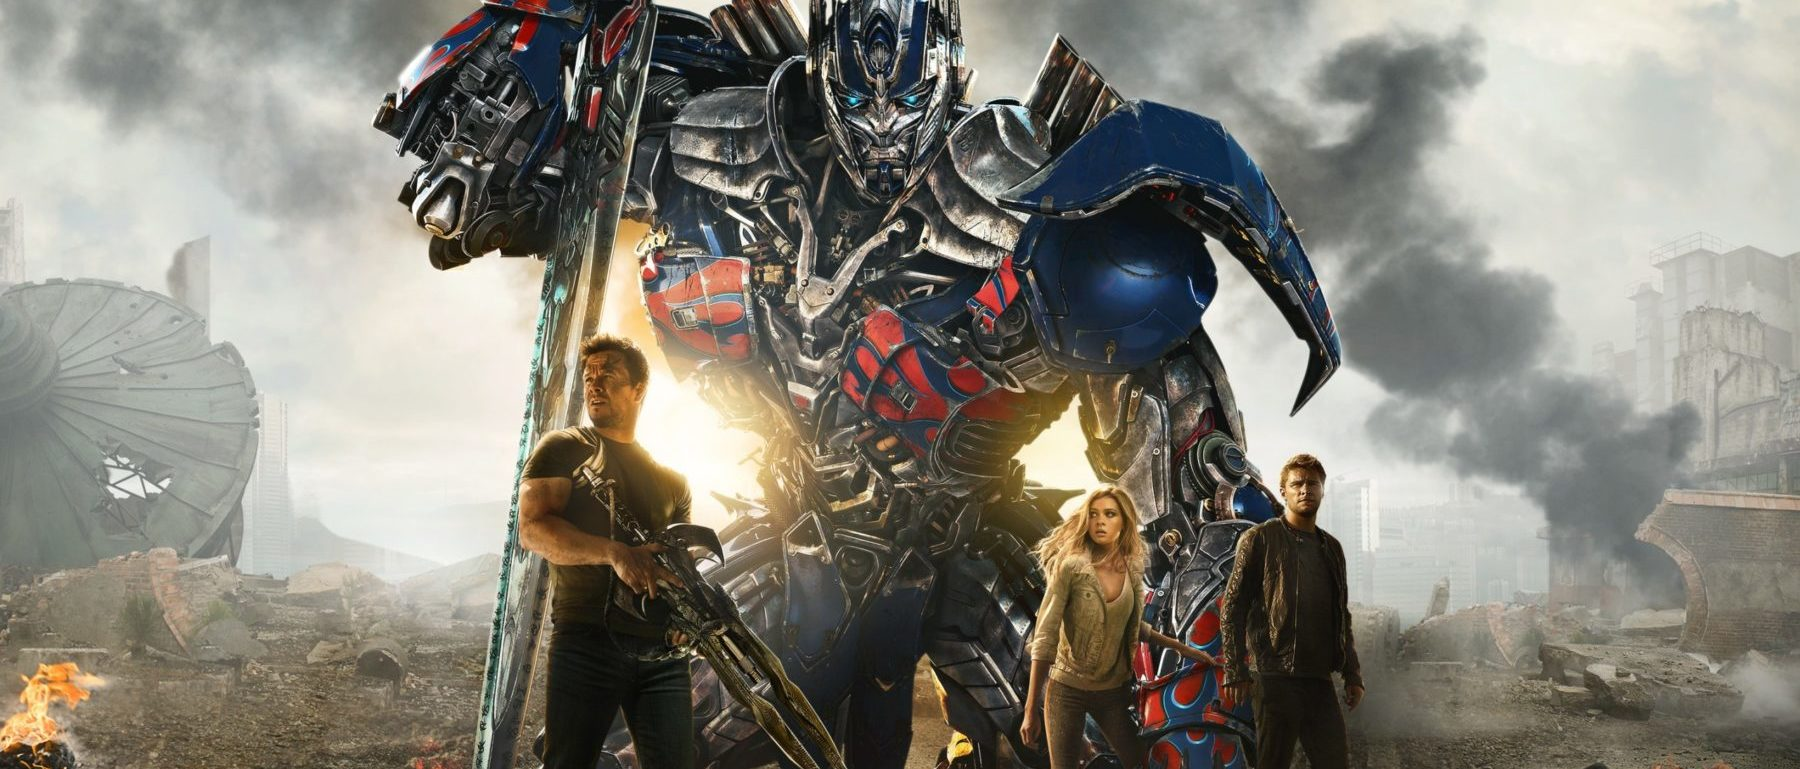 Transformers movies franchise rebooted